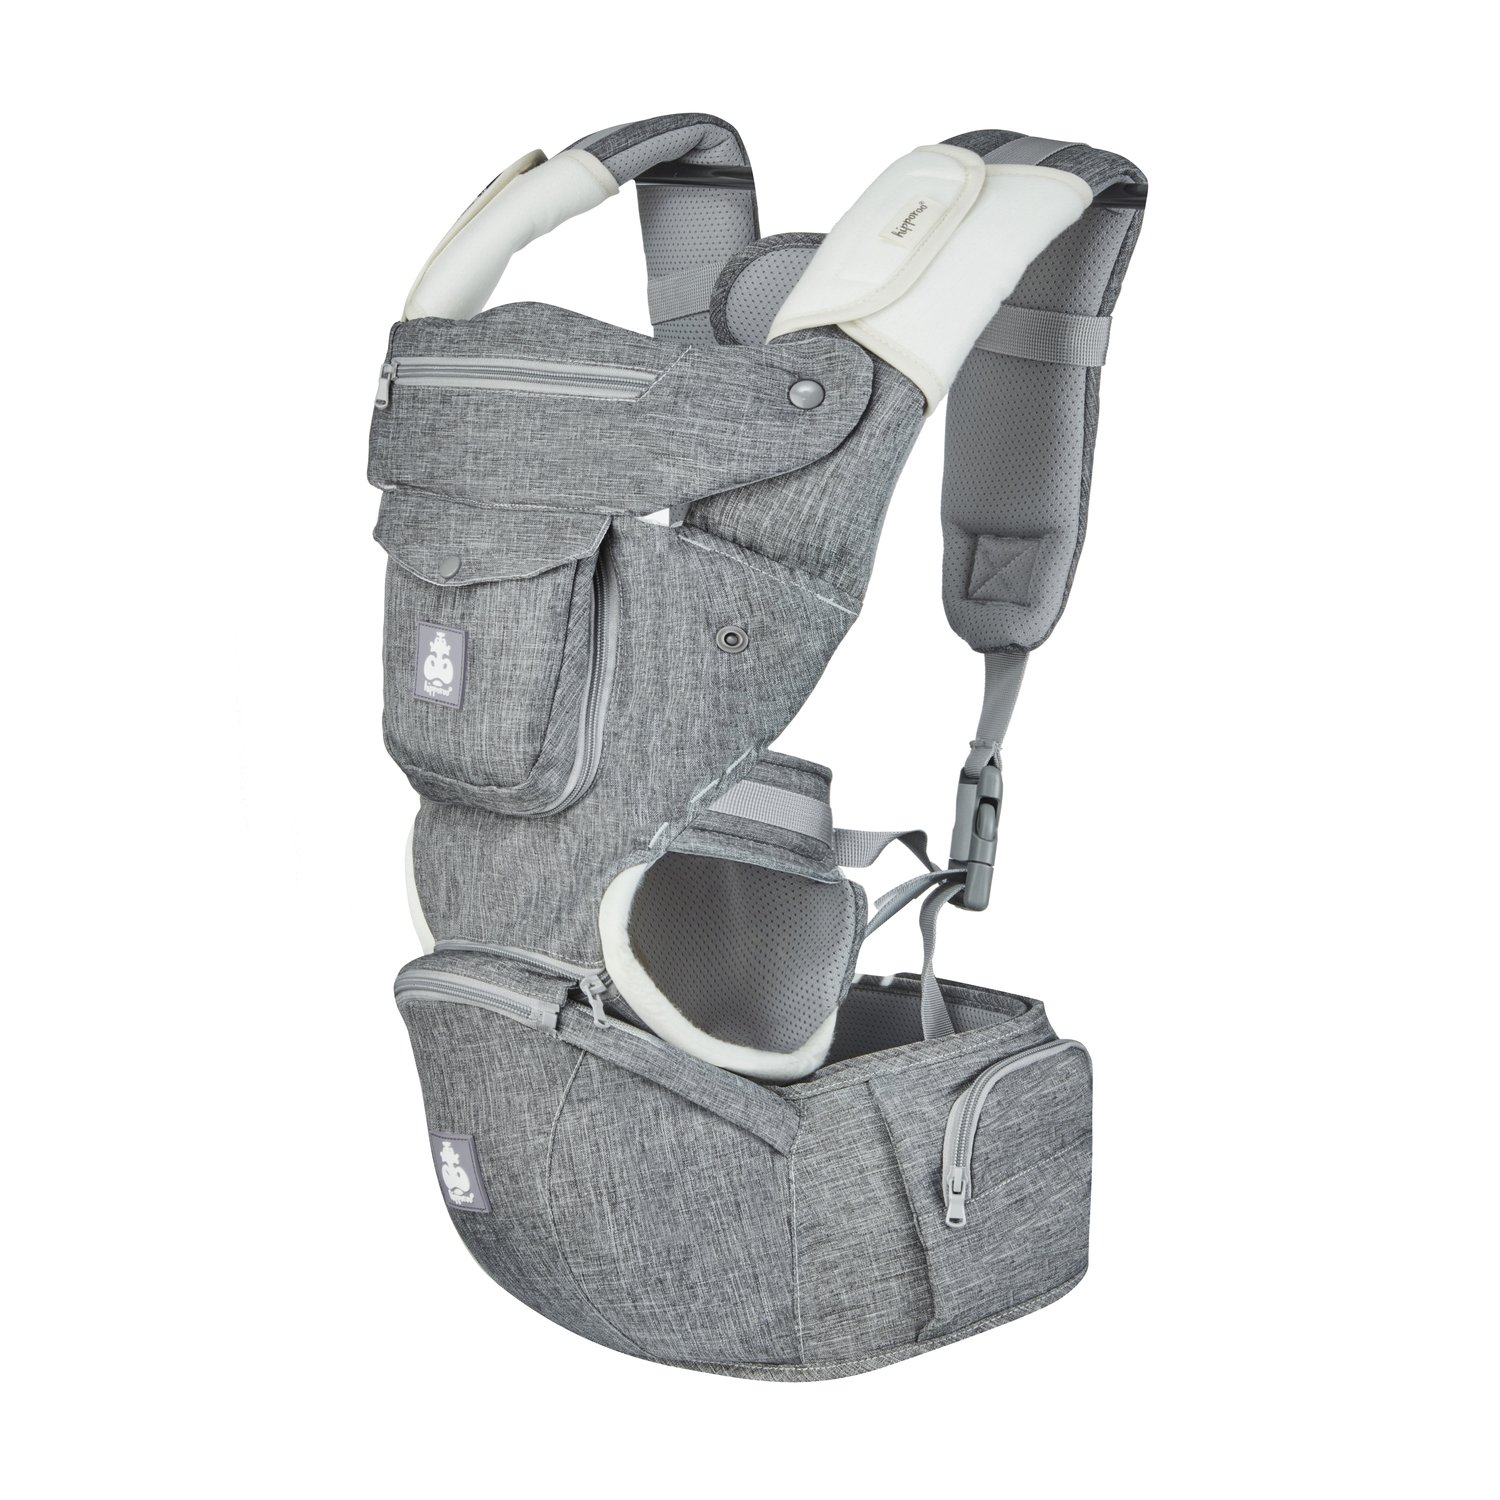 Hipporoo 10-in-1 Baby Carrier